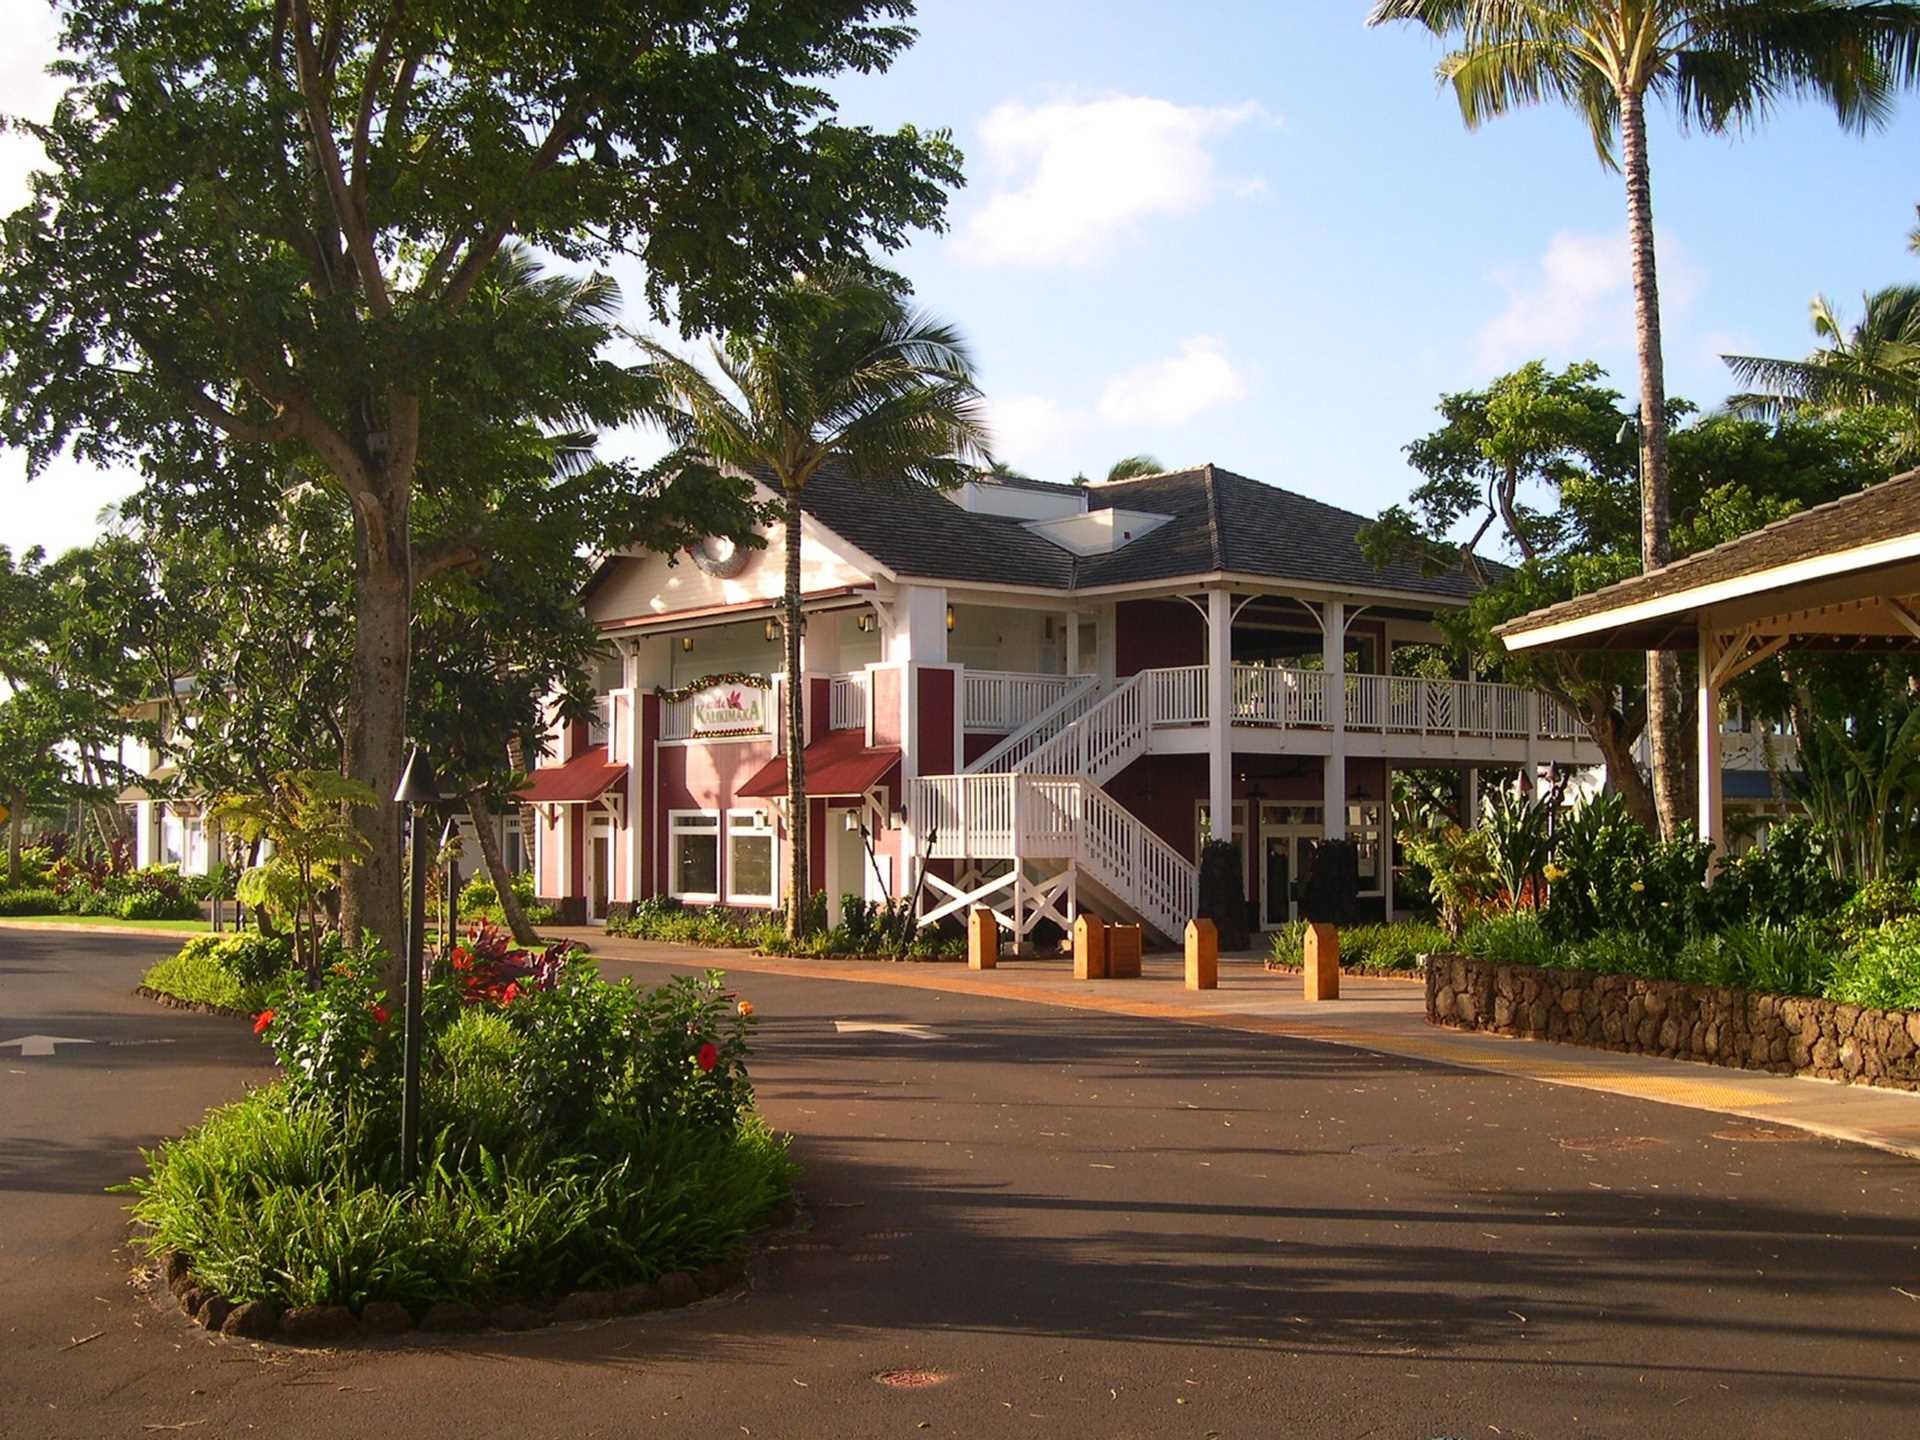 Kukui'Ula village has great shopping botiques and resta